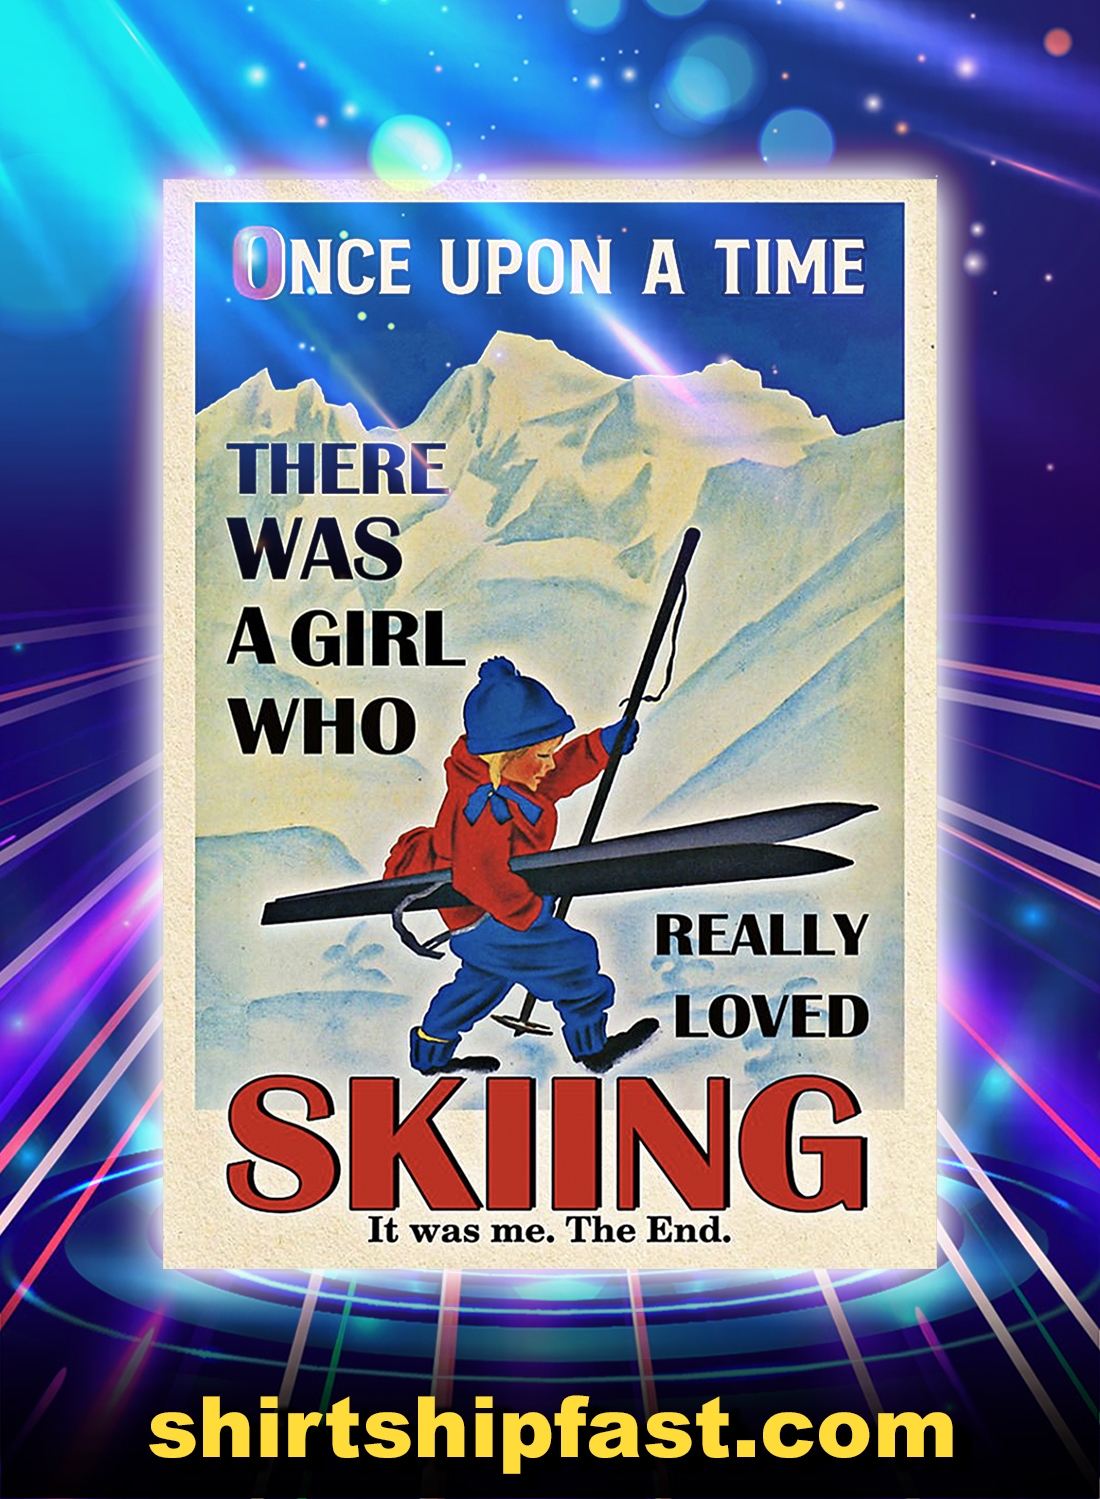 Once upon a time there was a girl who really loved SKIING poster - A4